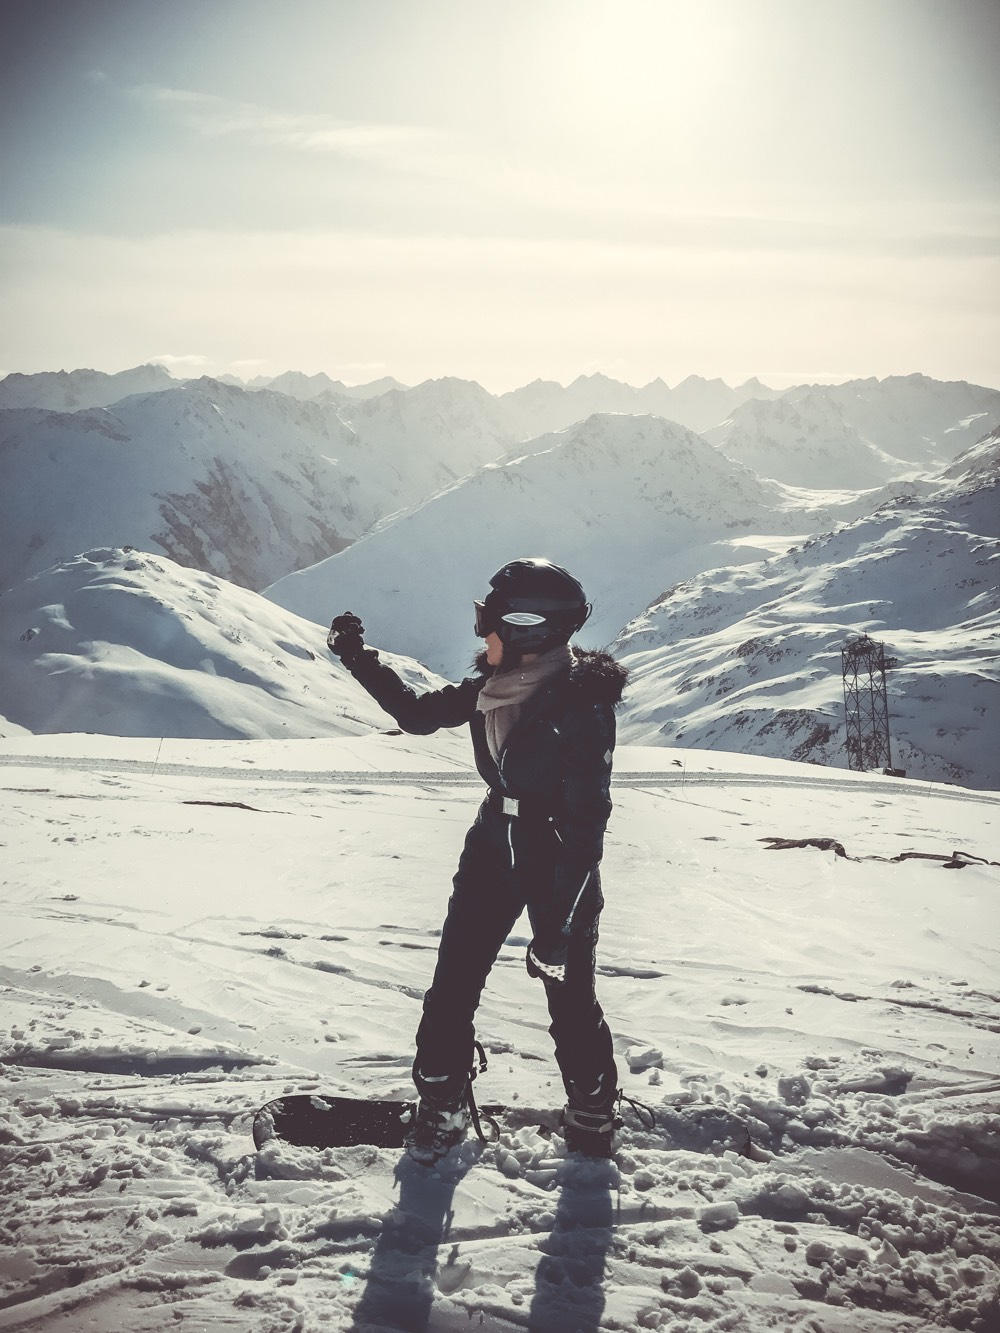 Skiing in switzerland, swiss alps, winter sport, andermatt mountain guide for snowboarders